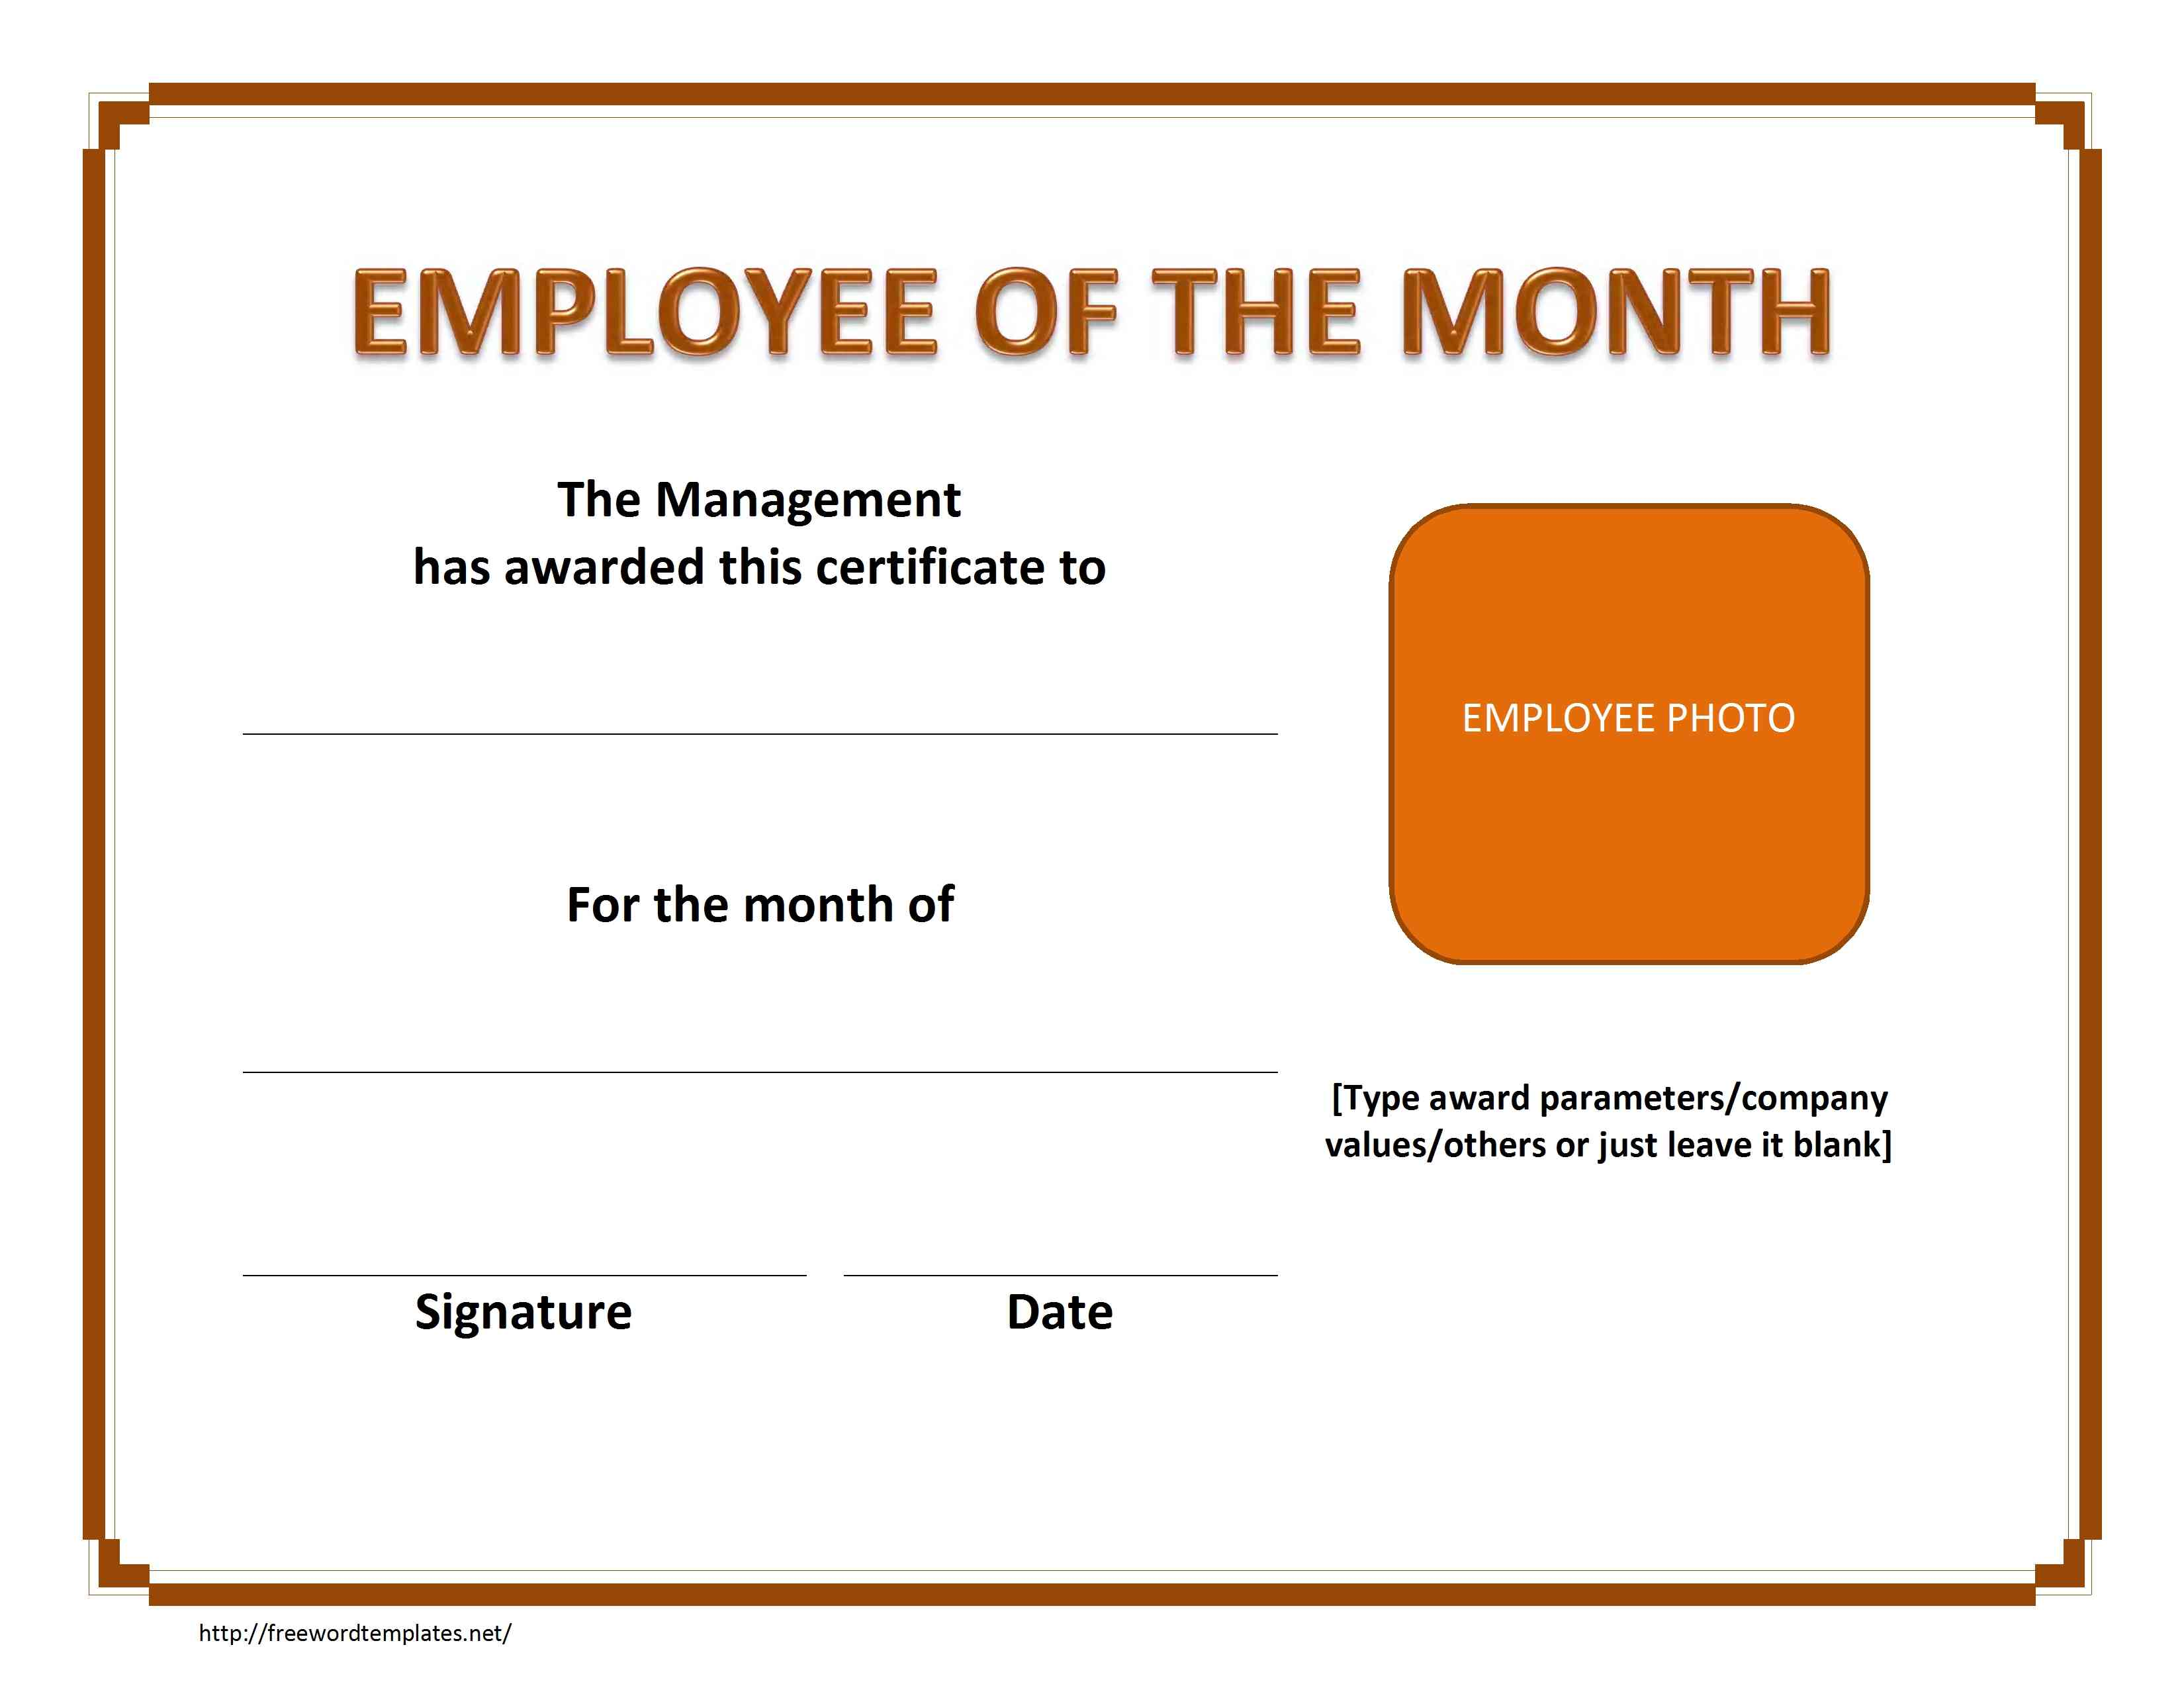 107-Employe-of-The-Month-Certificate-With-Photo-Landscape